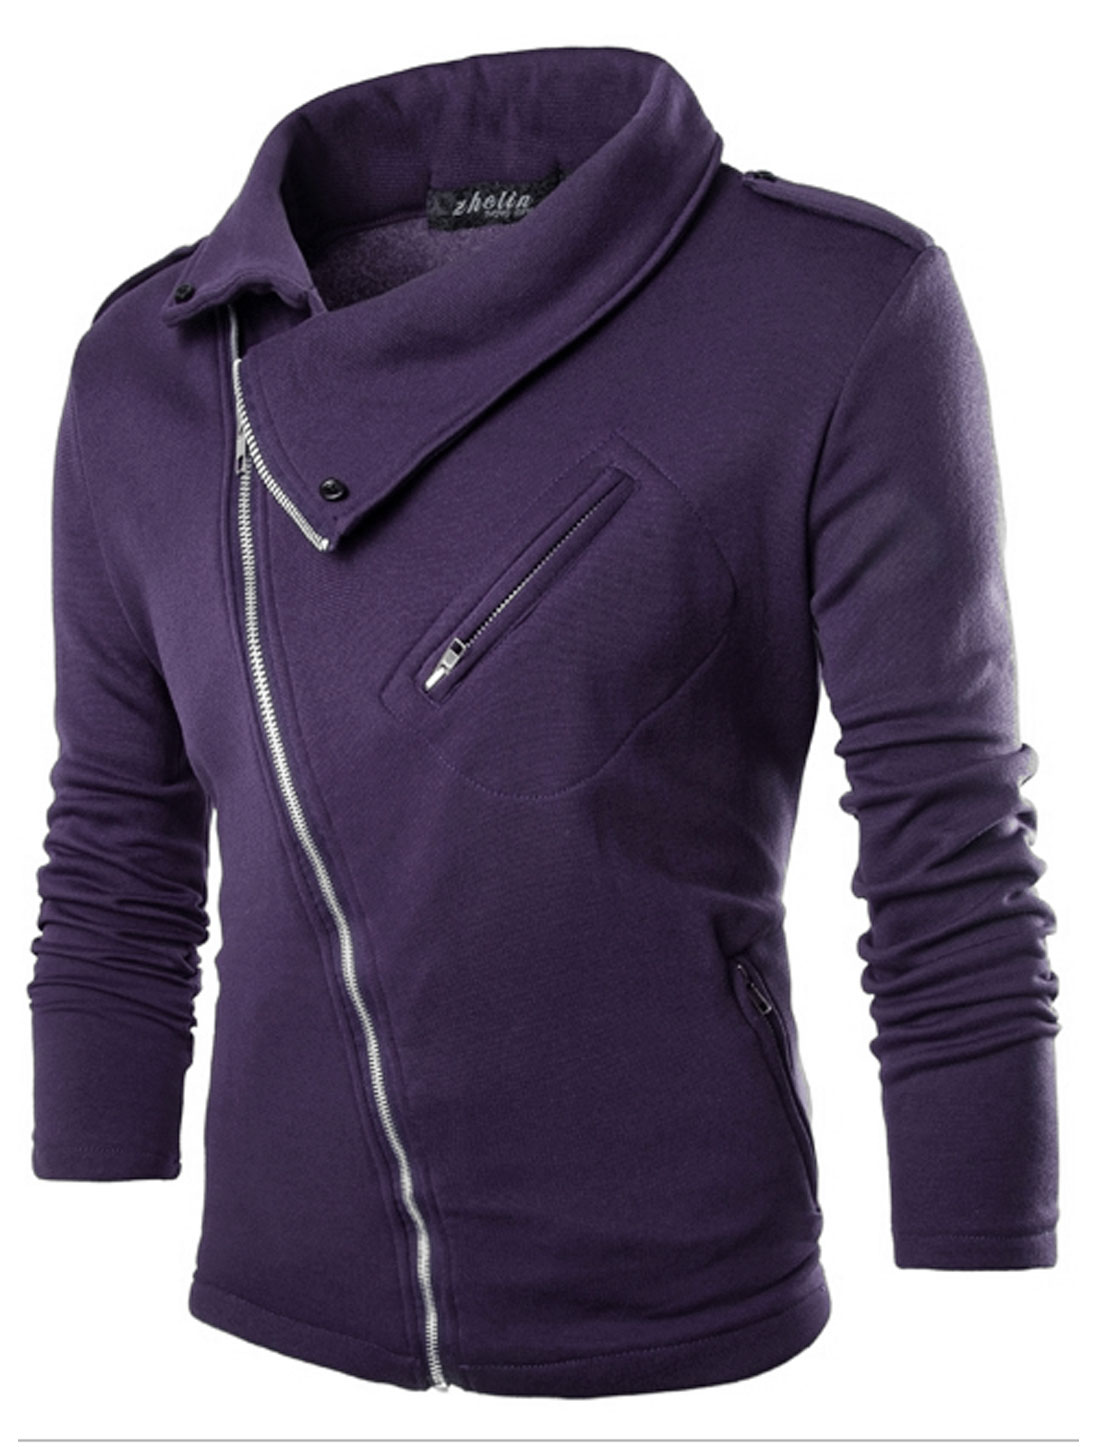 Men Long Sleeve Turn Down Collar Inclined Zipper Casual Jacket Purple M